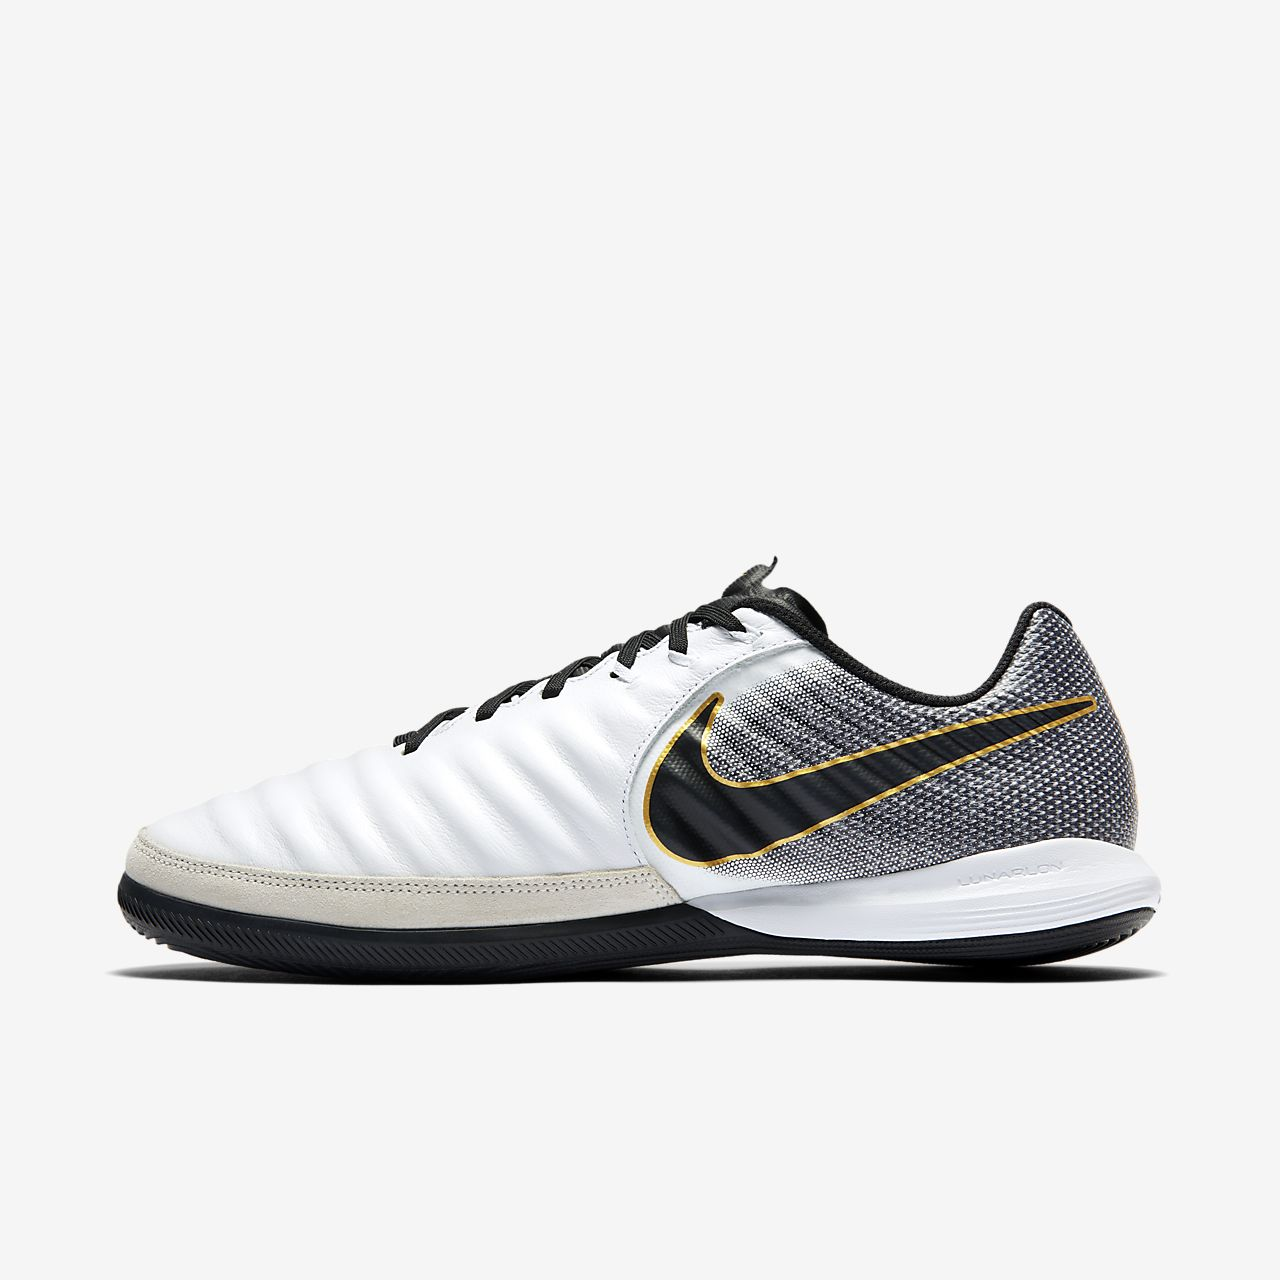 Nike TiempoX Lunar Legend VII Pro Indoor Court Football Shoe. Nike ... b476a3e5c79